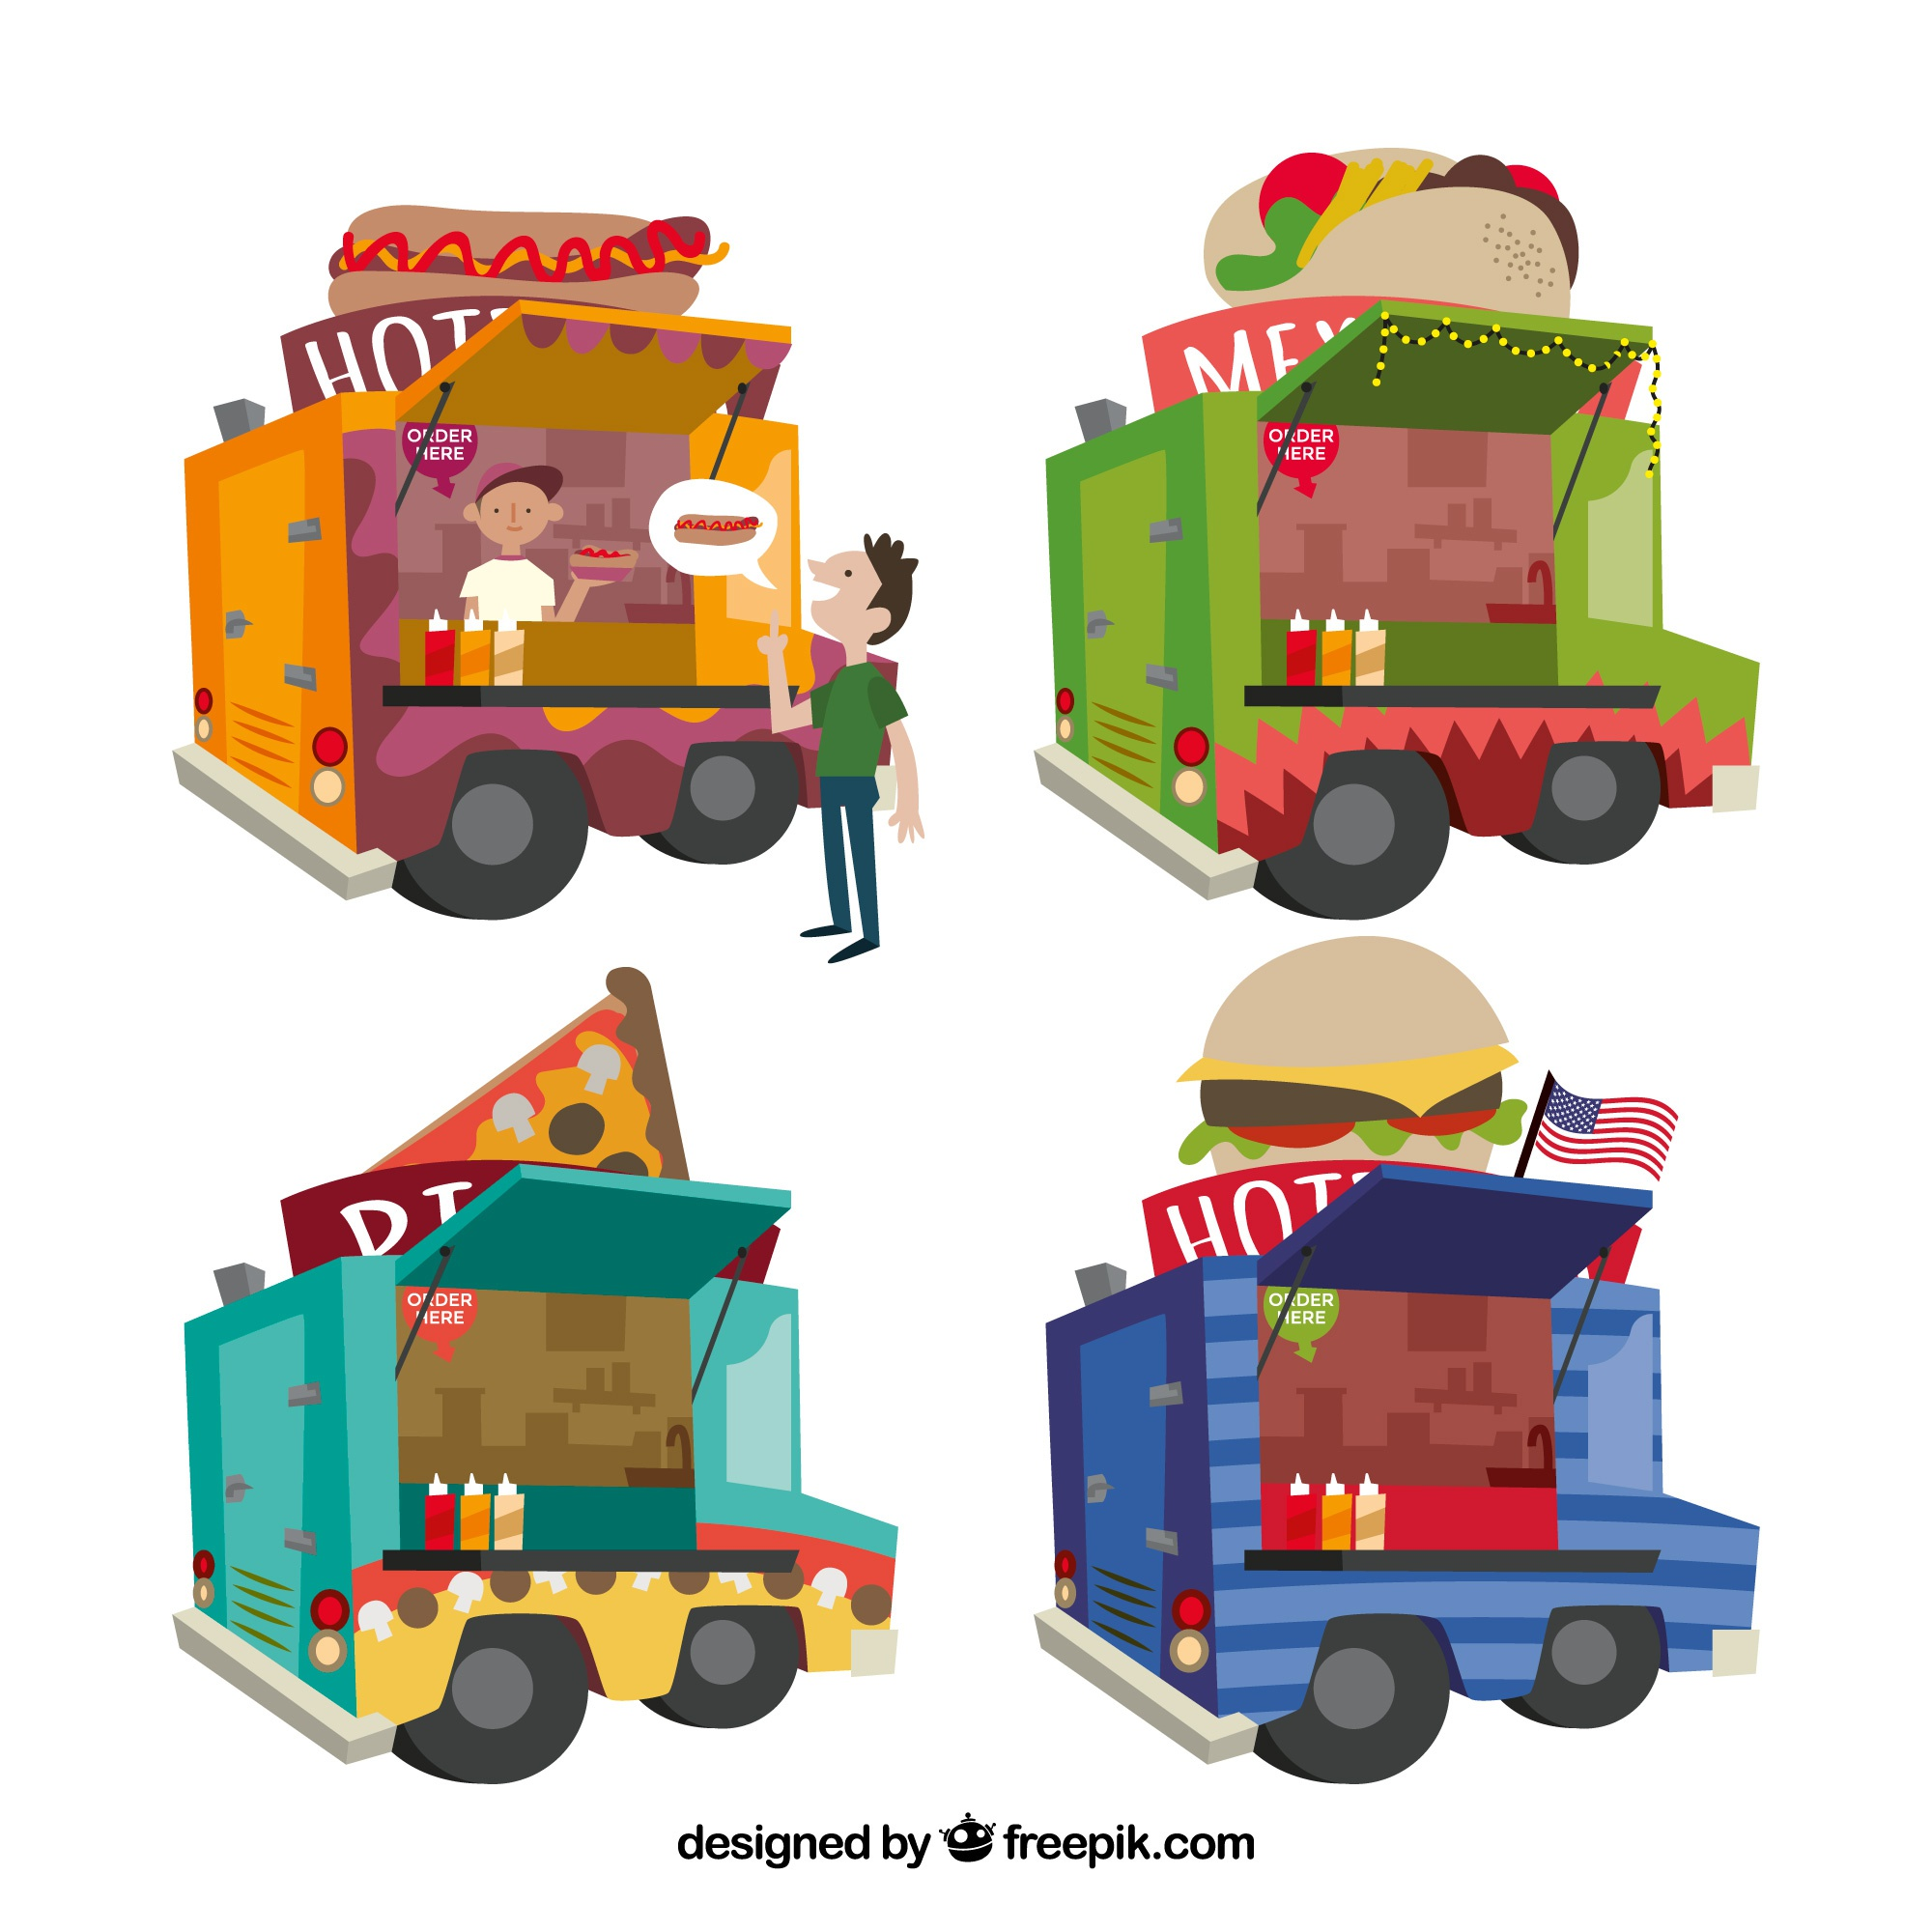 Lovely set of food truck with fun style